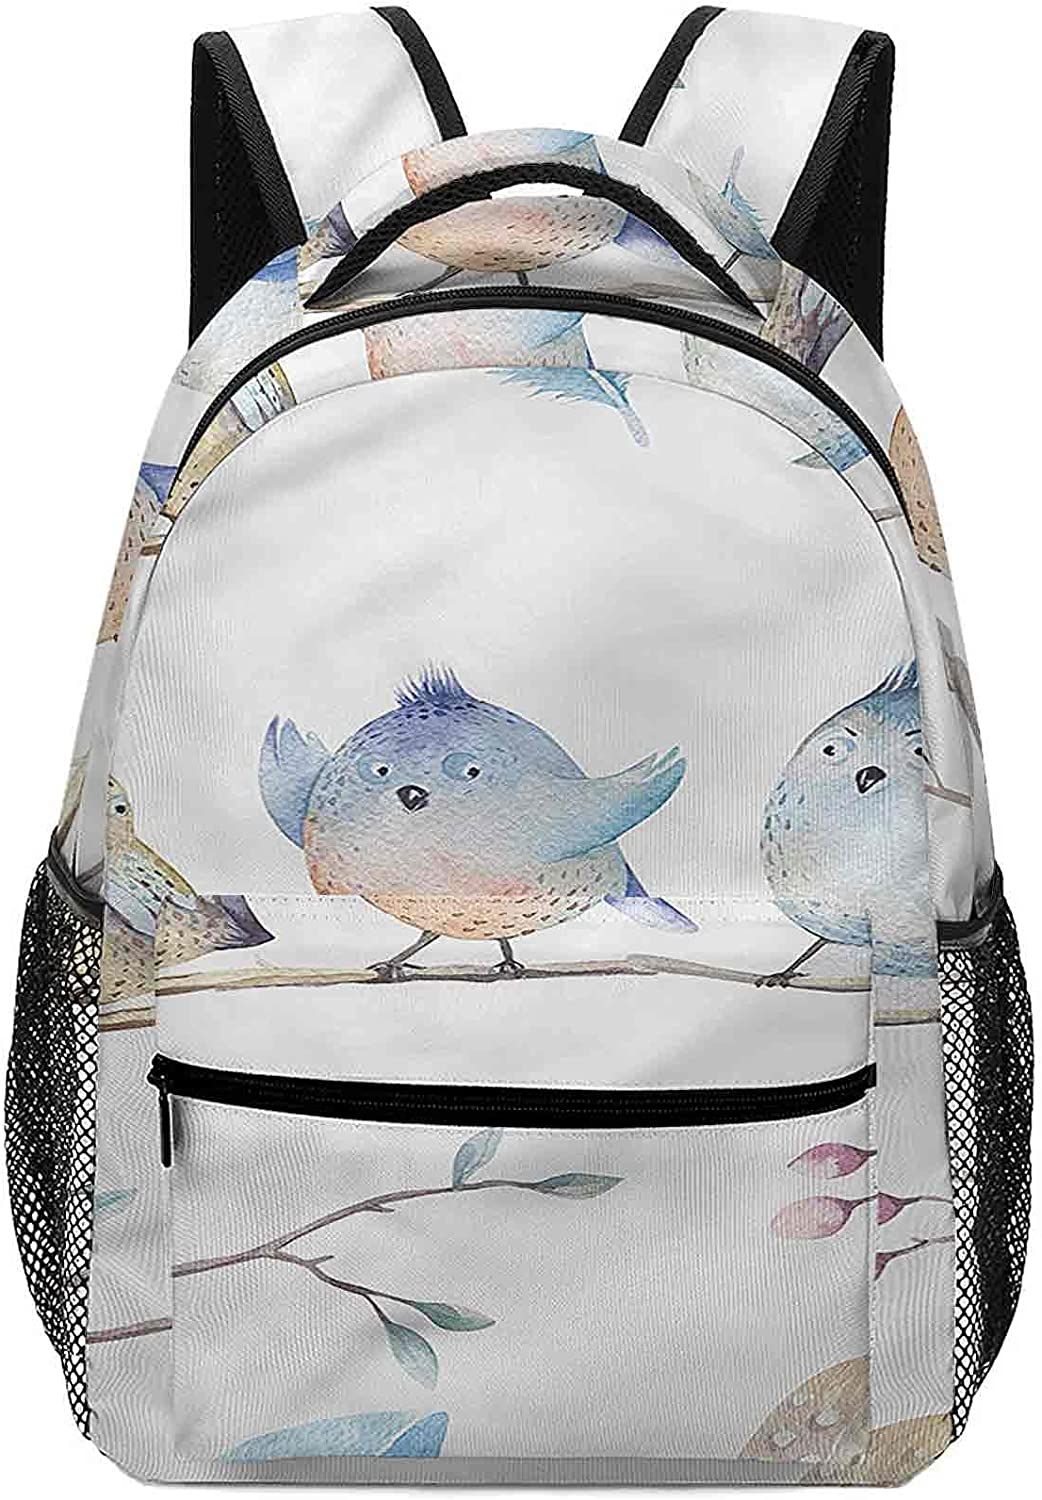 16.5 Inch Backpack for Boys Girls Perfect Outstanding Birds on Excellence Perching